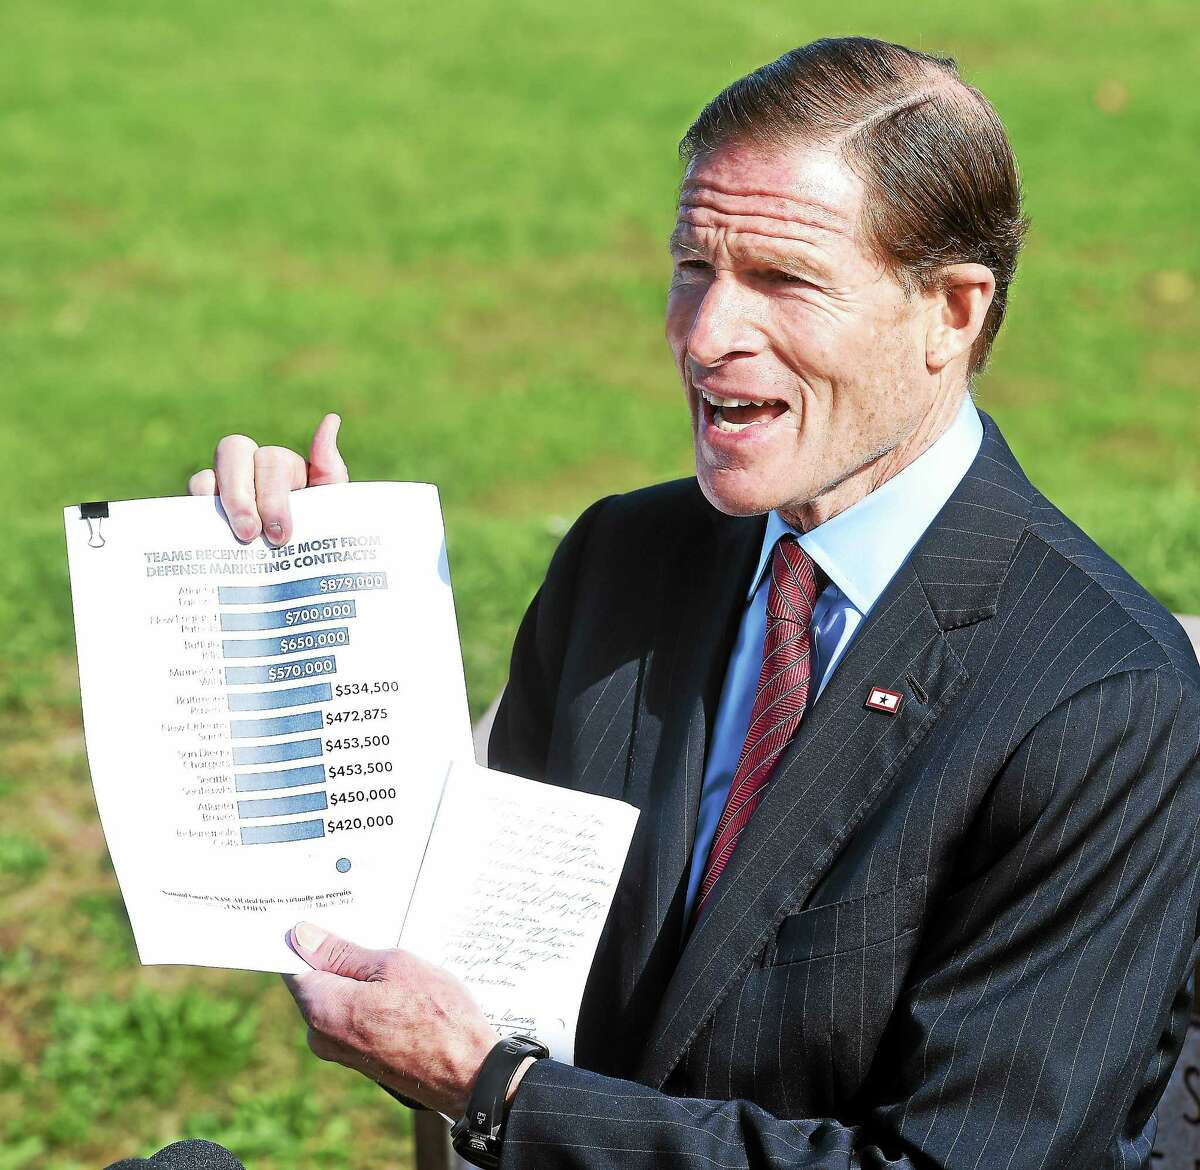 U.S. Senator Richard Blumenthal displays a list of the highest compensated NFL teams benefiting from defense marketing contracts for patriotic displays and performances during a press conference in New Haven on 11/9/2015.